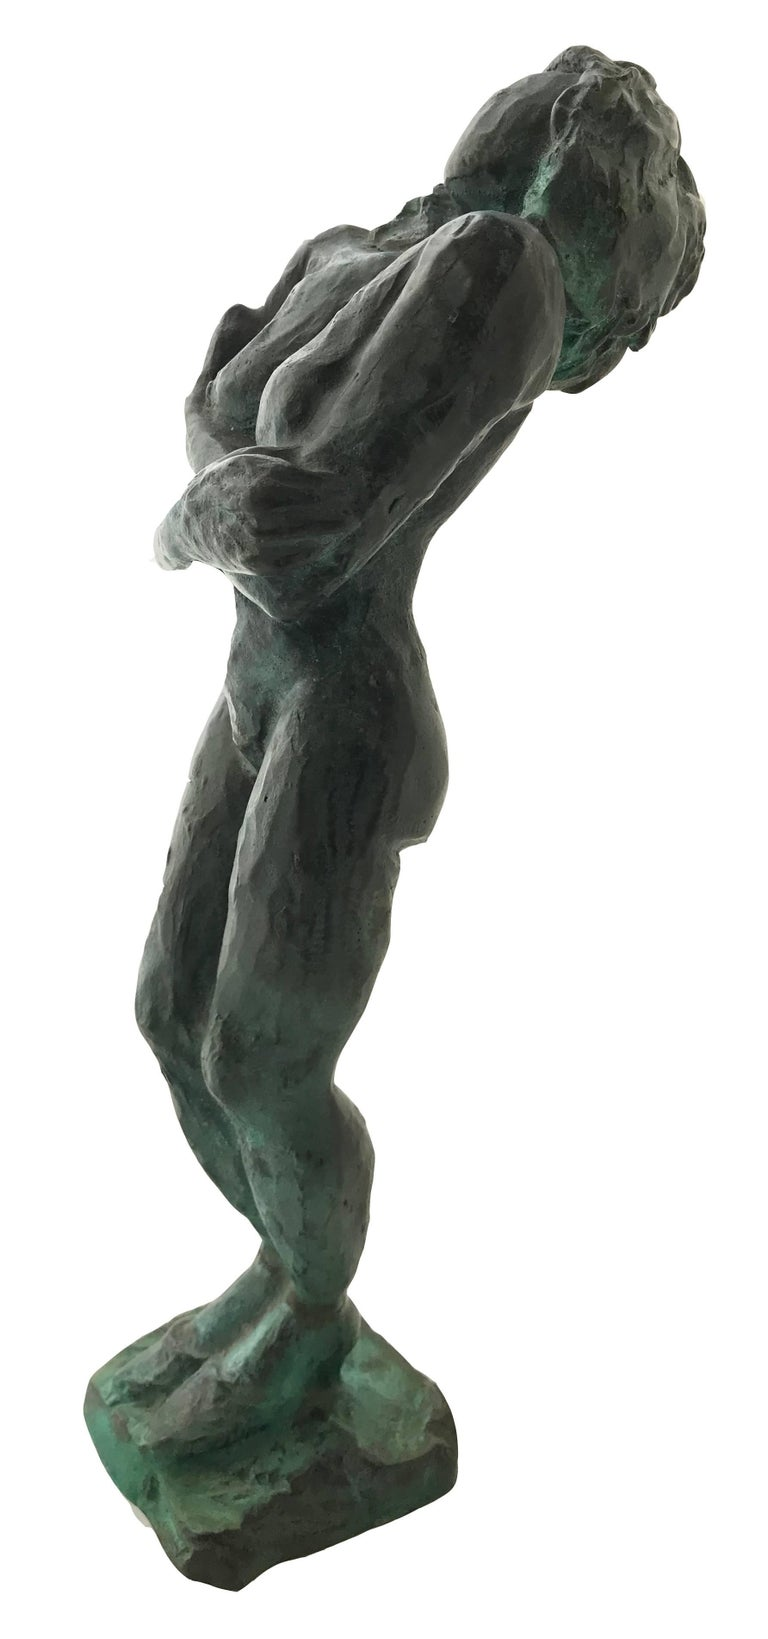 Nude Woman; Nicole Durand (French 1957); bronze with patina; - Gold Nude Sculpture by Nicole Durand